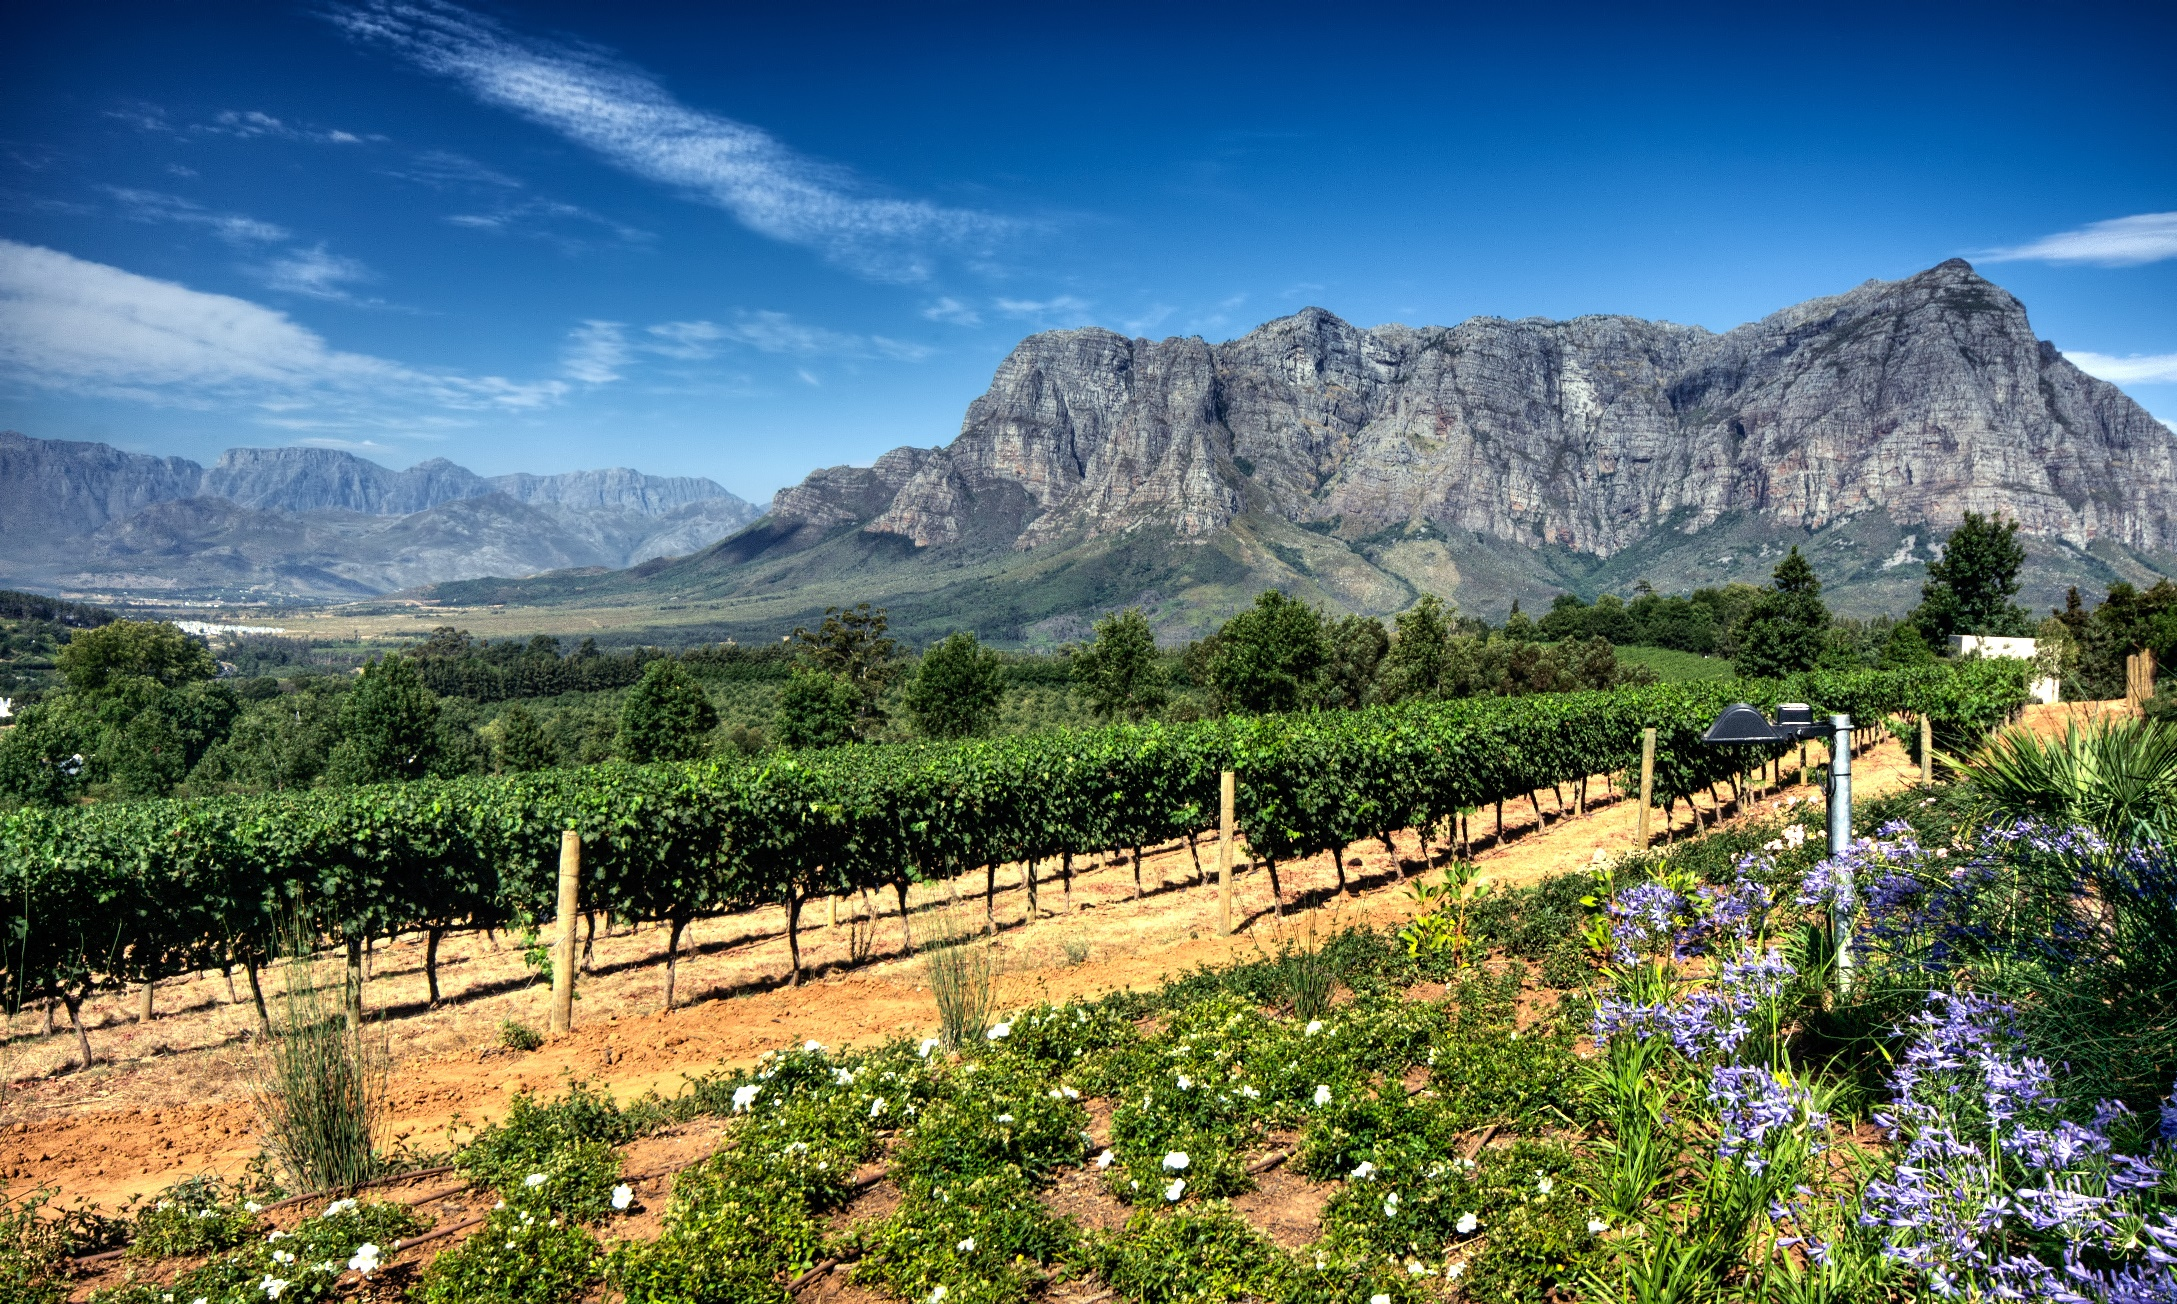 Stellenbosch Vineyard, South Africa